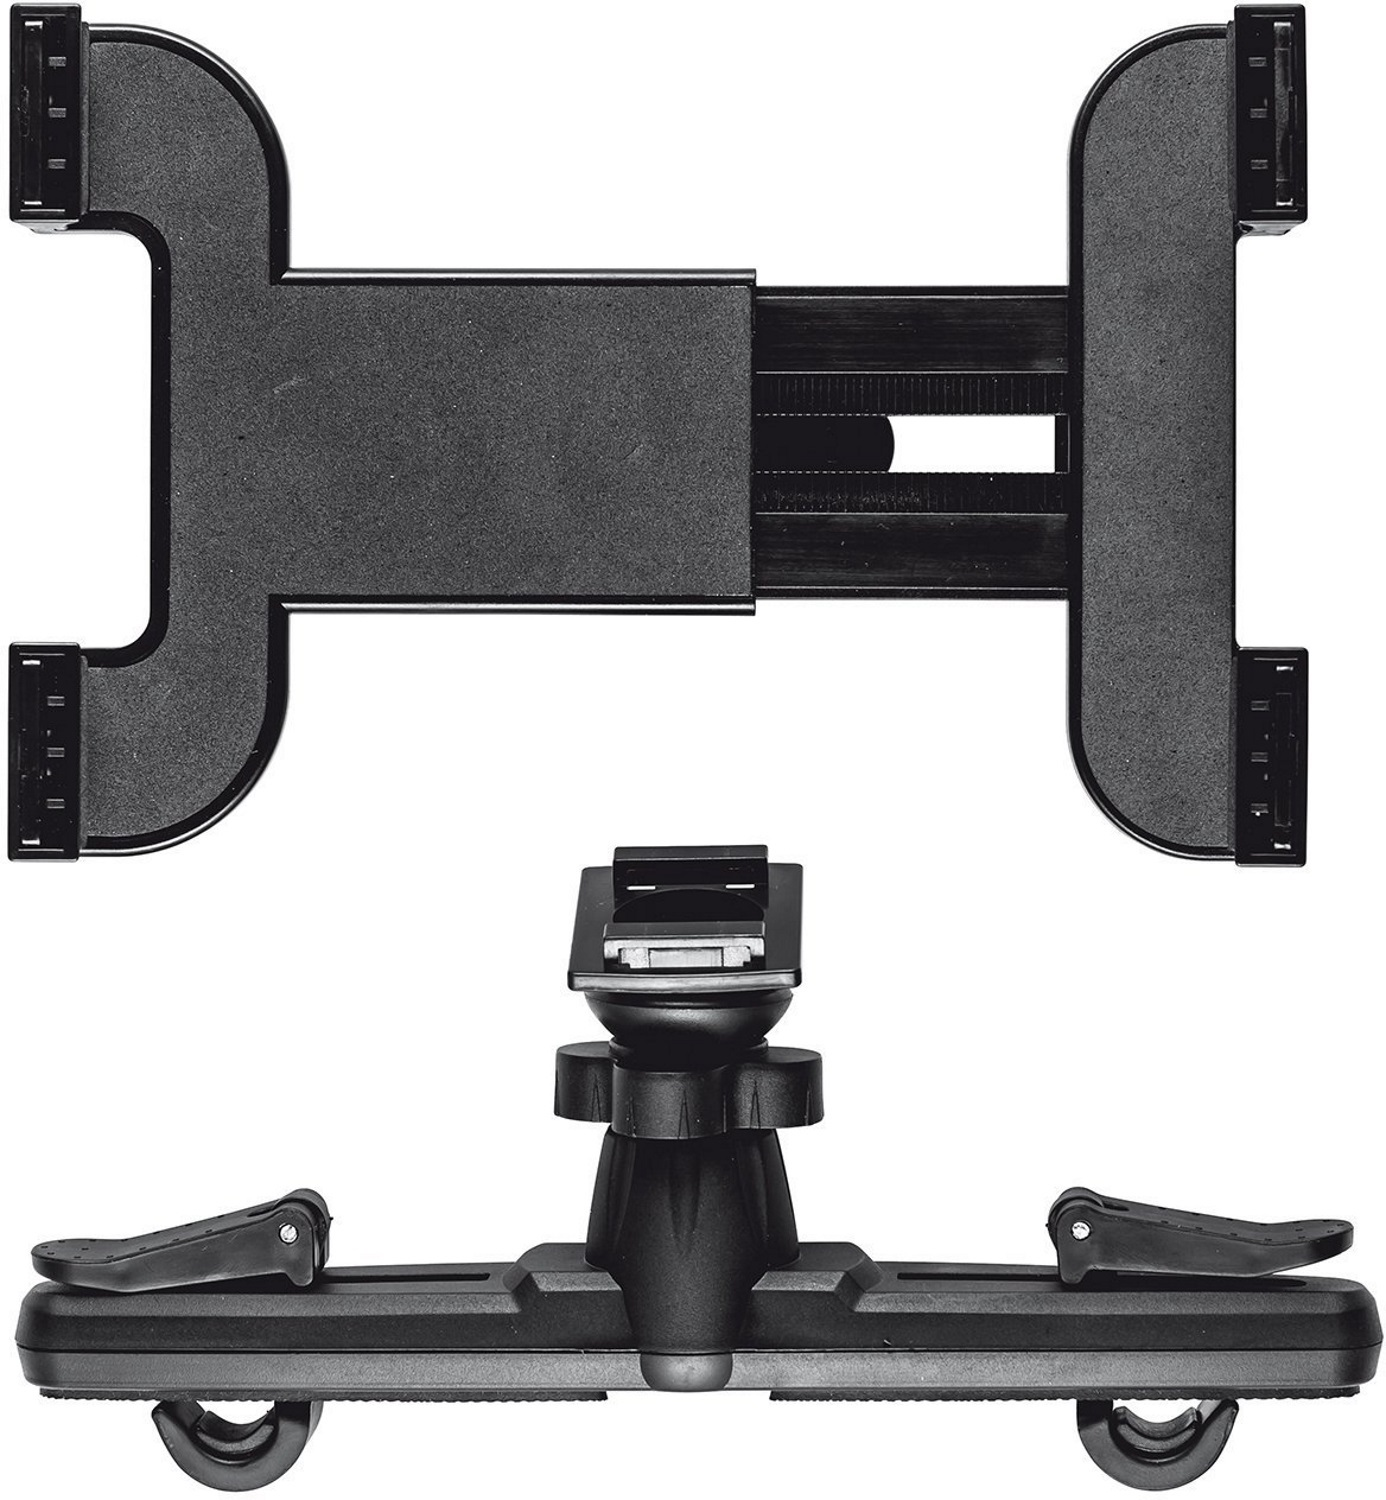 Halter Für Tablet Trust Universal Car Headrest Holder Für Tablets Tablet